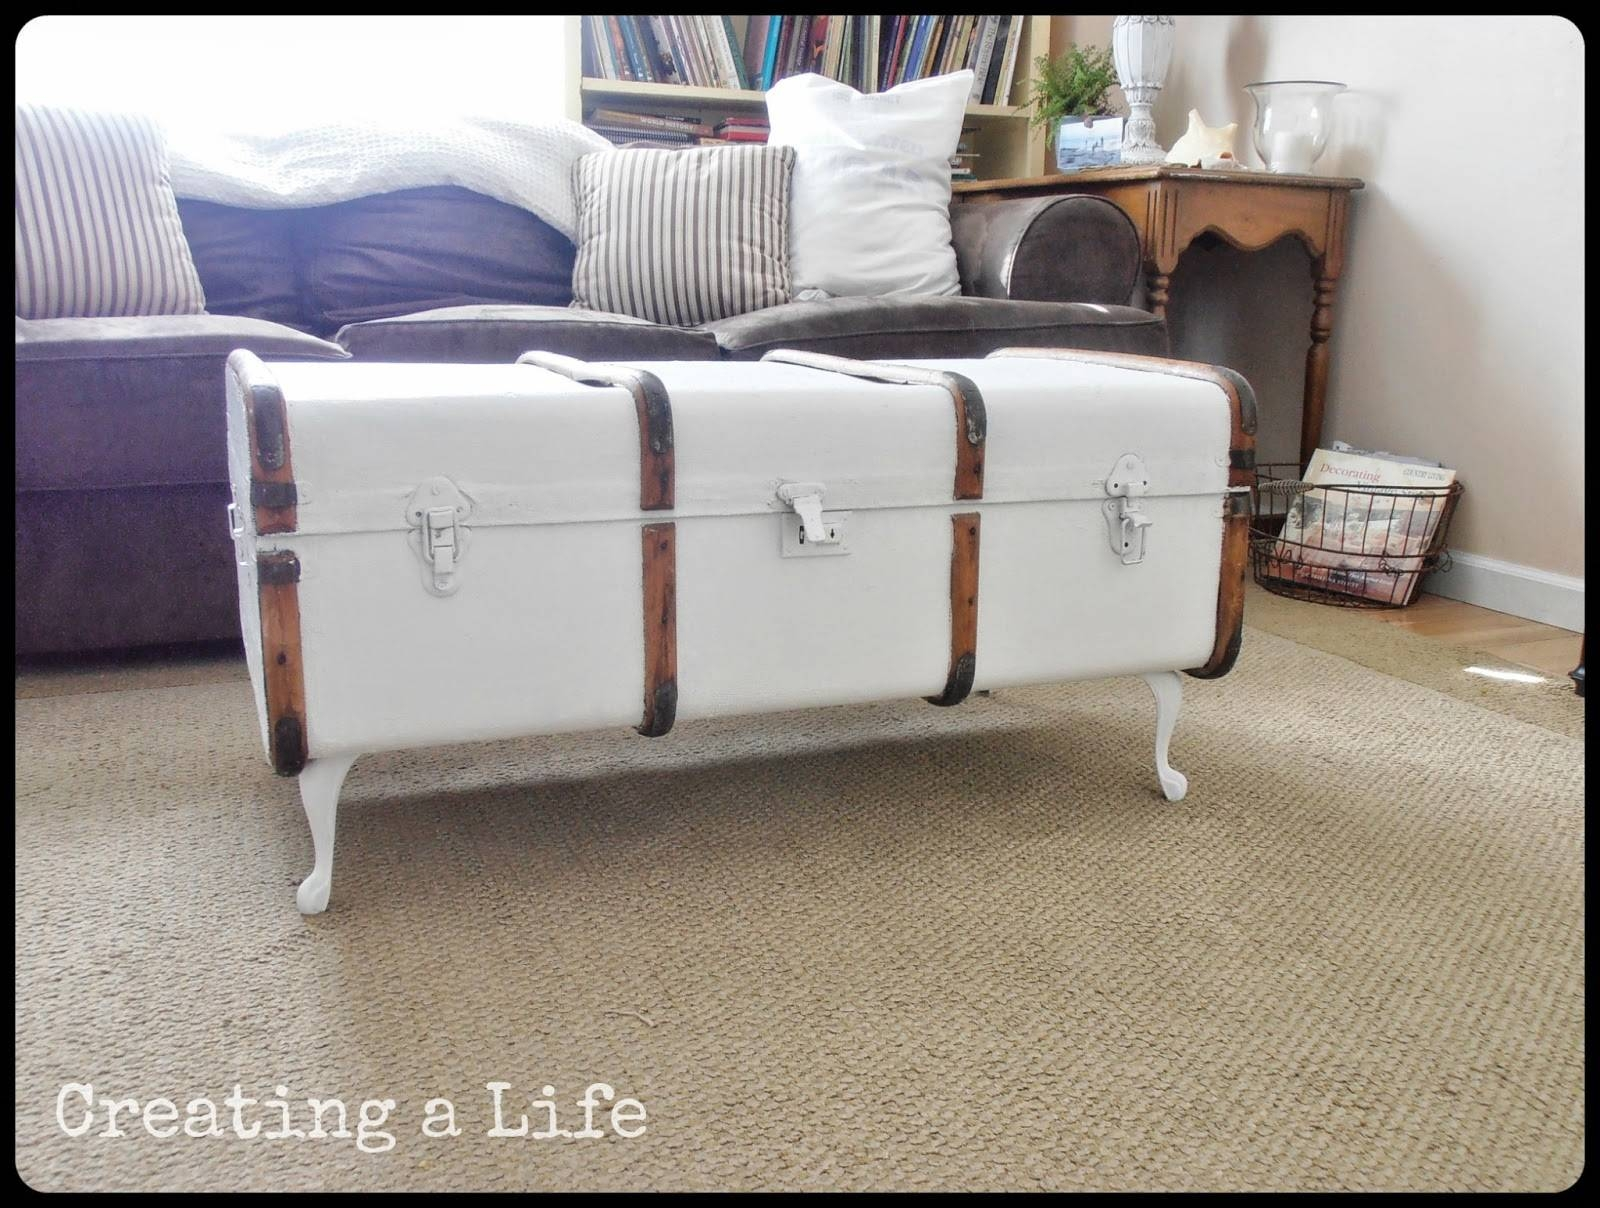 Wonderful Vintage Trunk Coffee Table With Vintage Suitcase To A inside Old Trunks As Coffee Tables (Image 30 of 30)